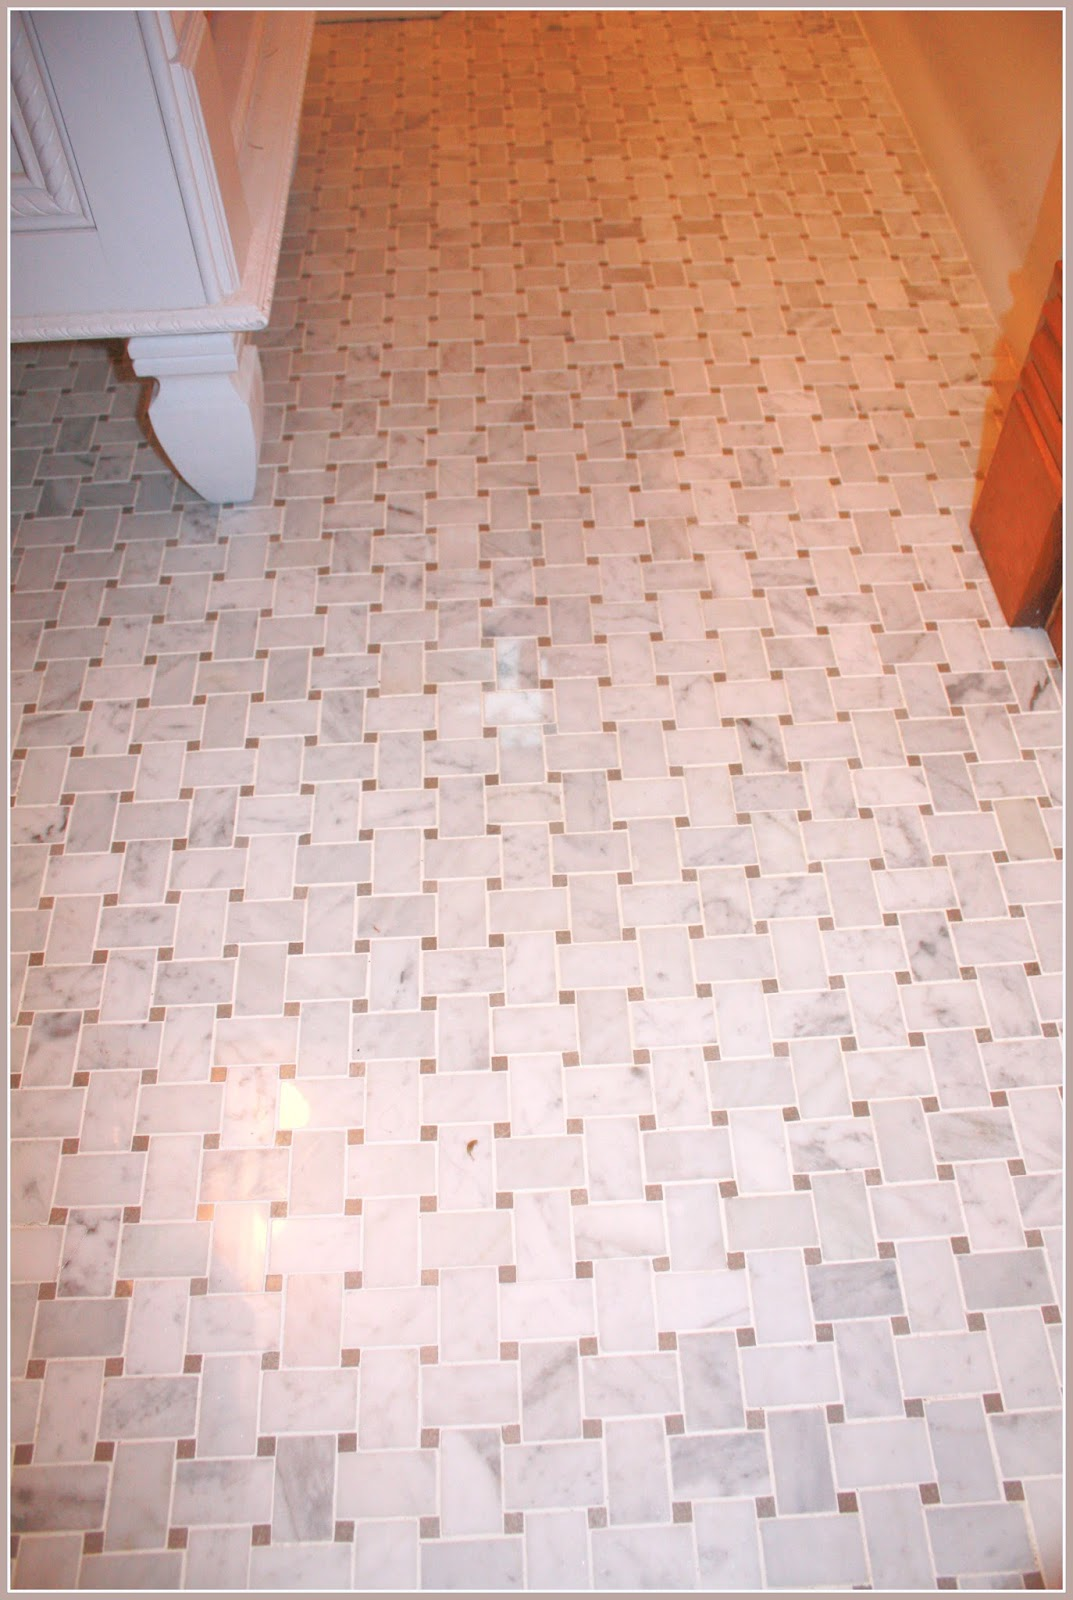 floor-design-top-notch-bathroom-decoration-using-white-marble-basketweave-tile-for-bathroom-flooring-design-ideas-beautiful-white-marble-basketweave-tile-for-flooring-design-ideas